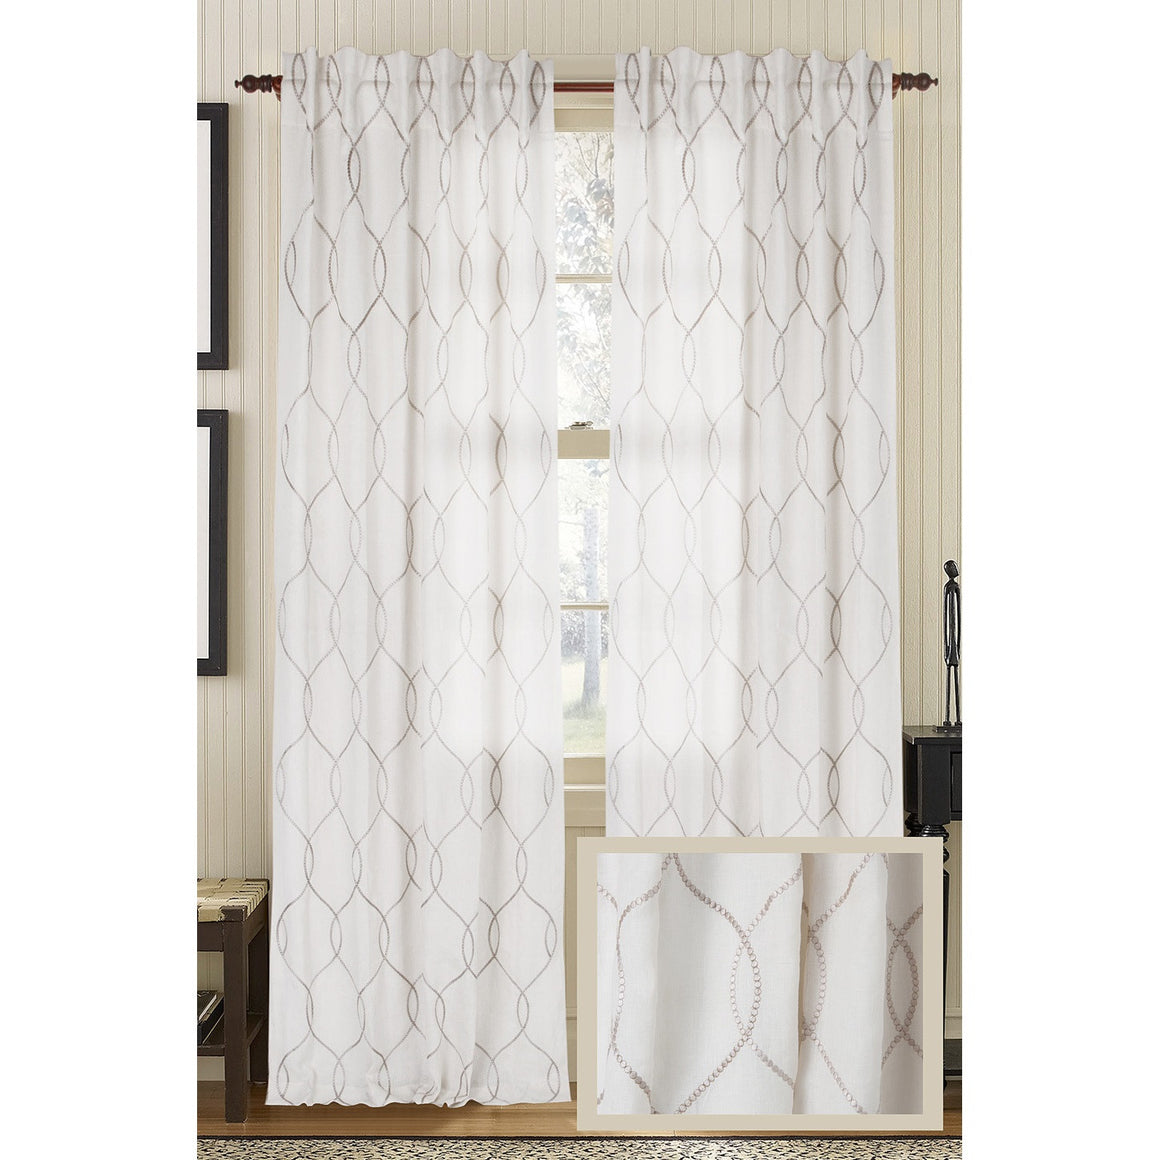 Amore Linen Drapes - Ivory